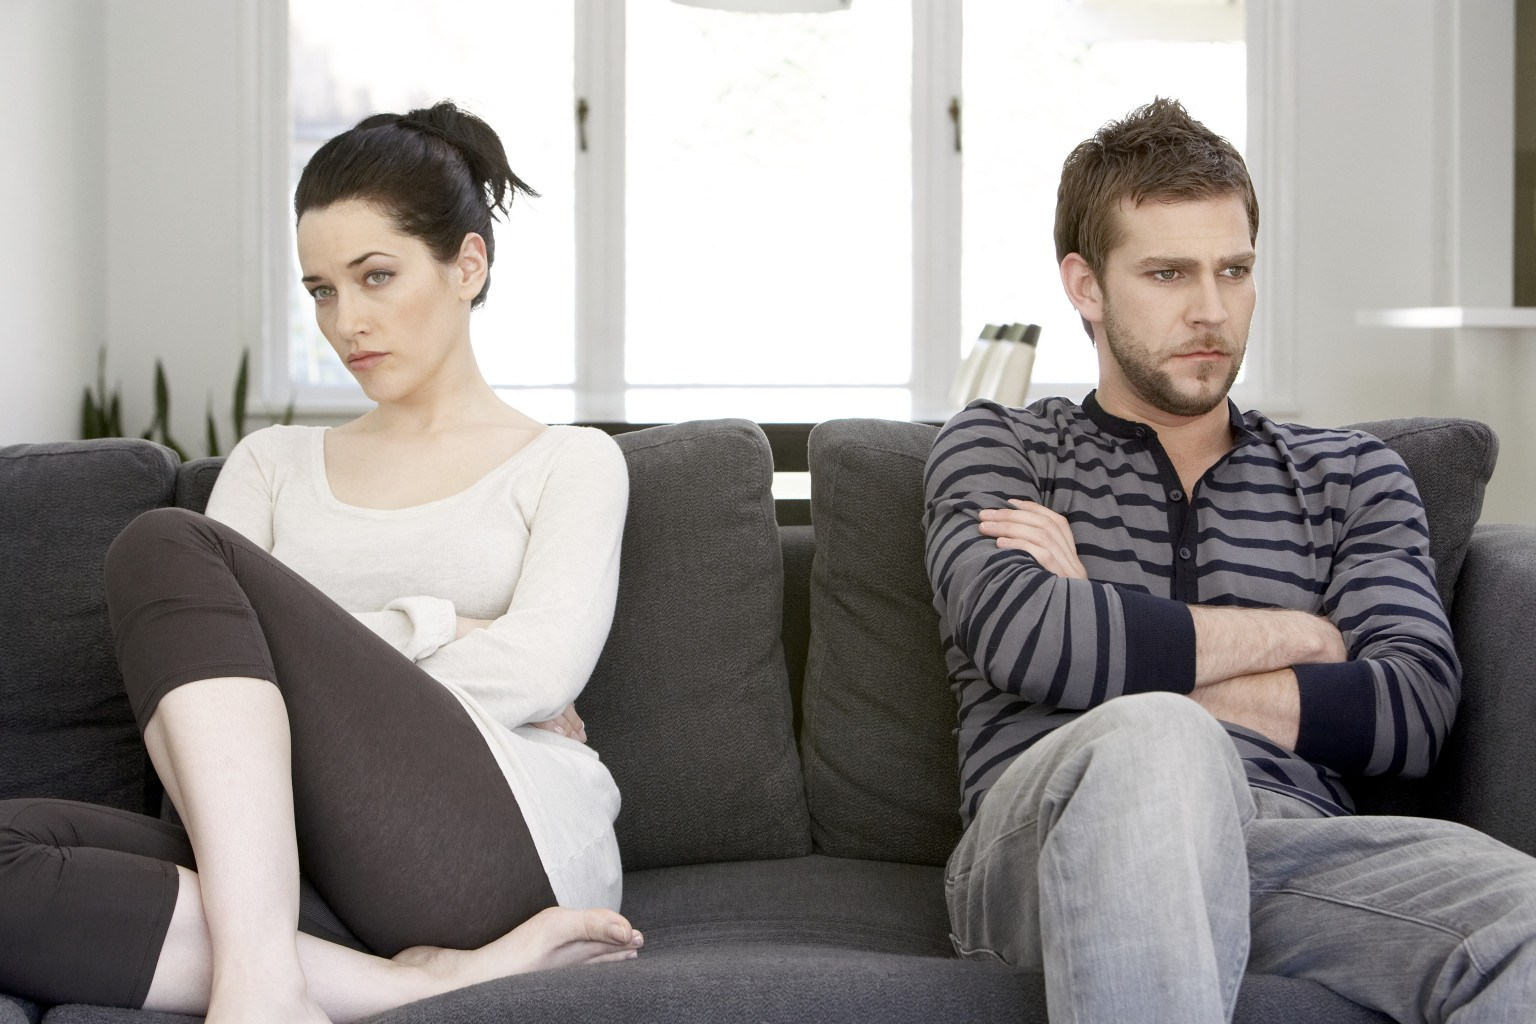 Signs of an Unhealthy Marriage